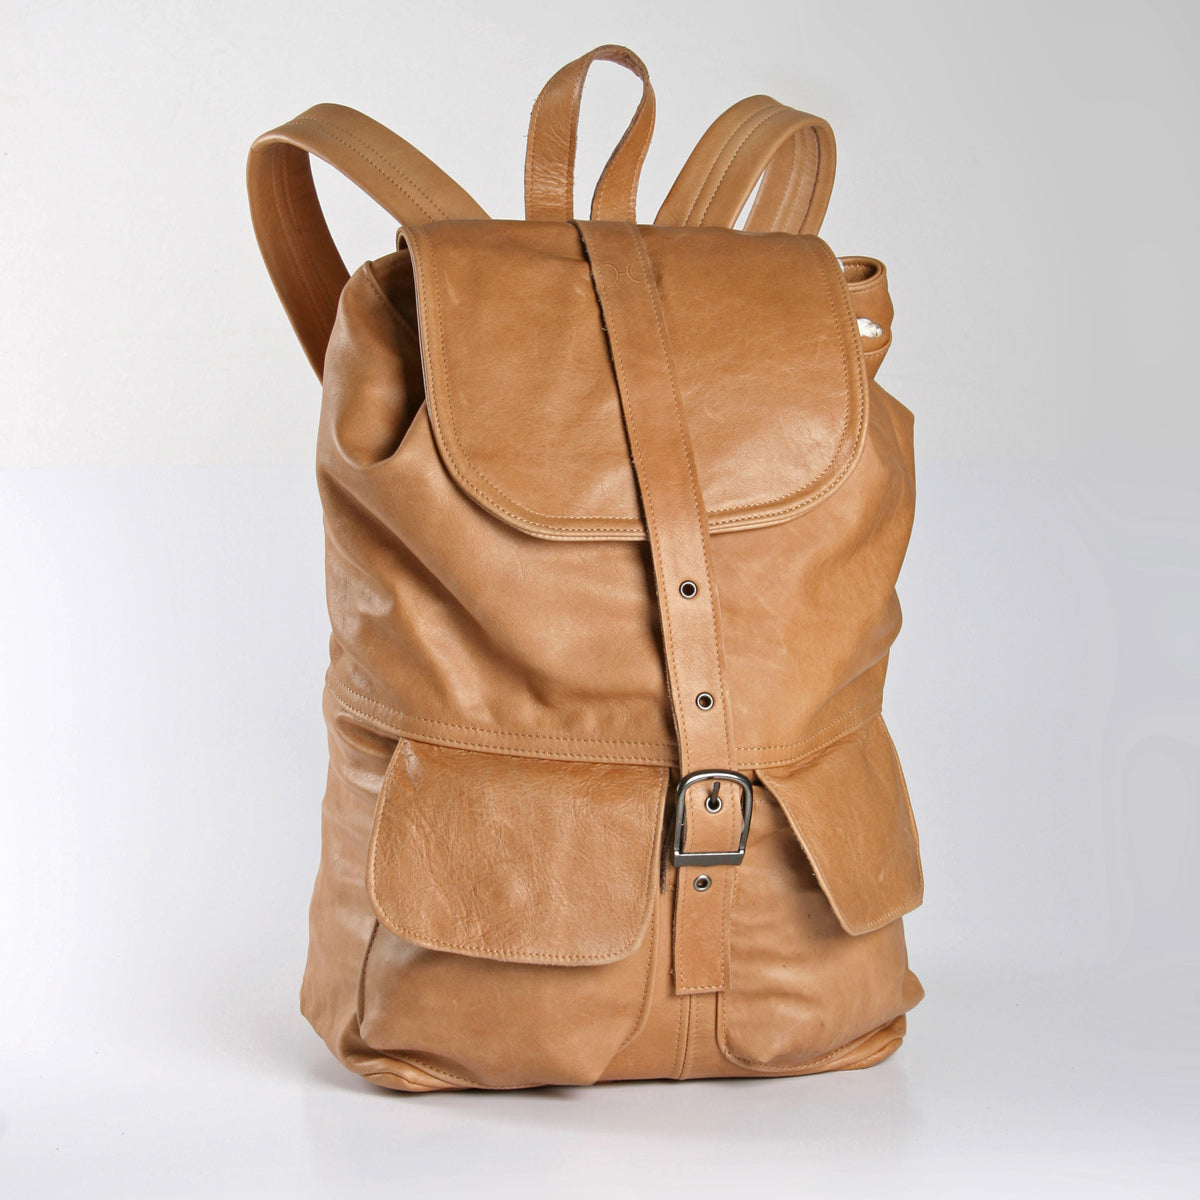 Thandana Masson Backpack - Hazelnut - Zufrique Boutique